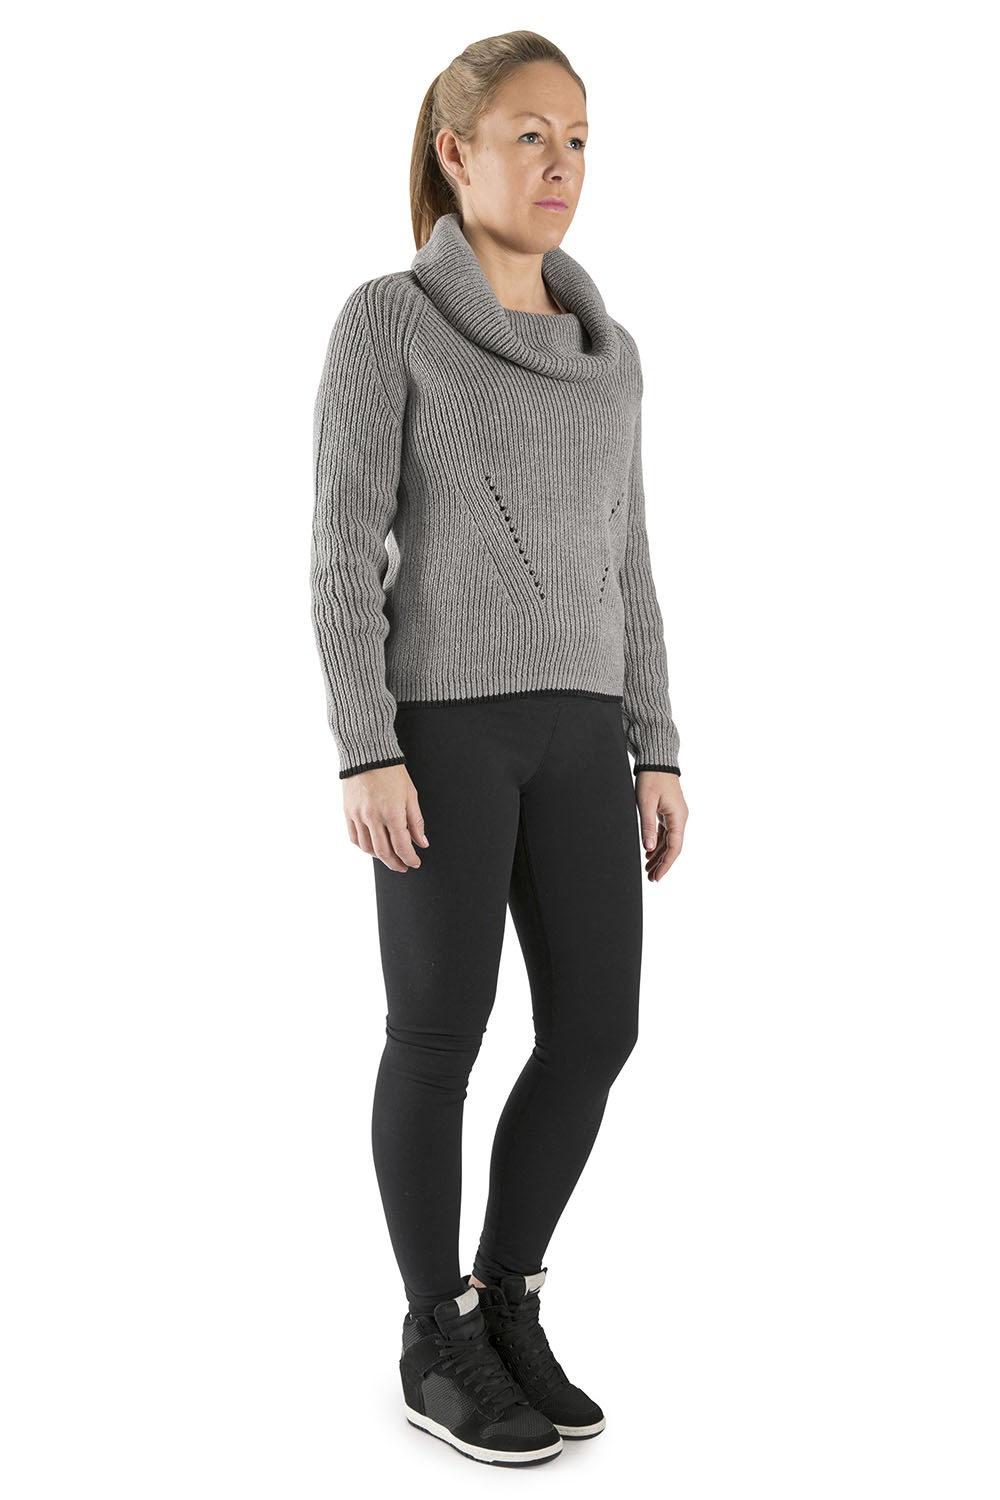 Roll Neck Knit Women's Dance Warmups